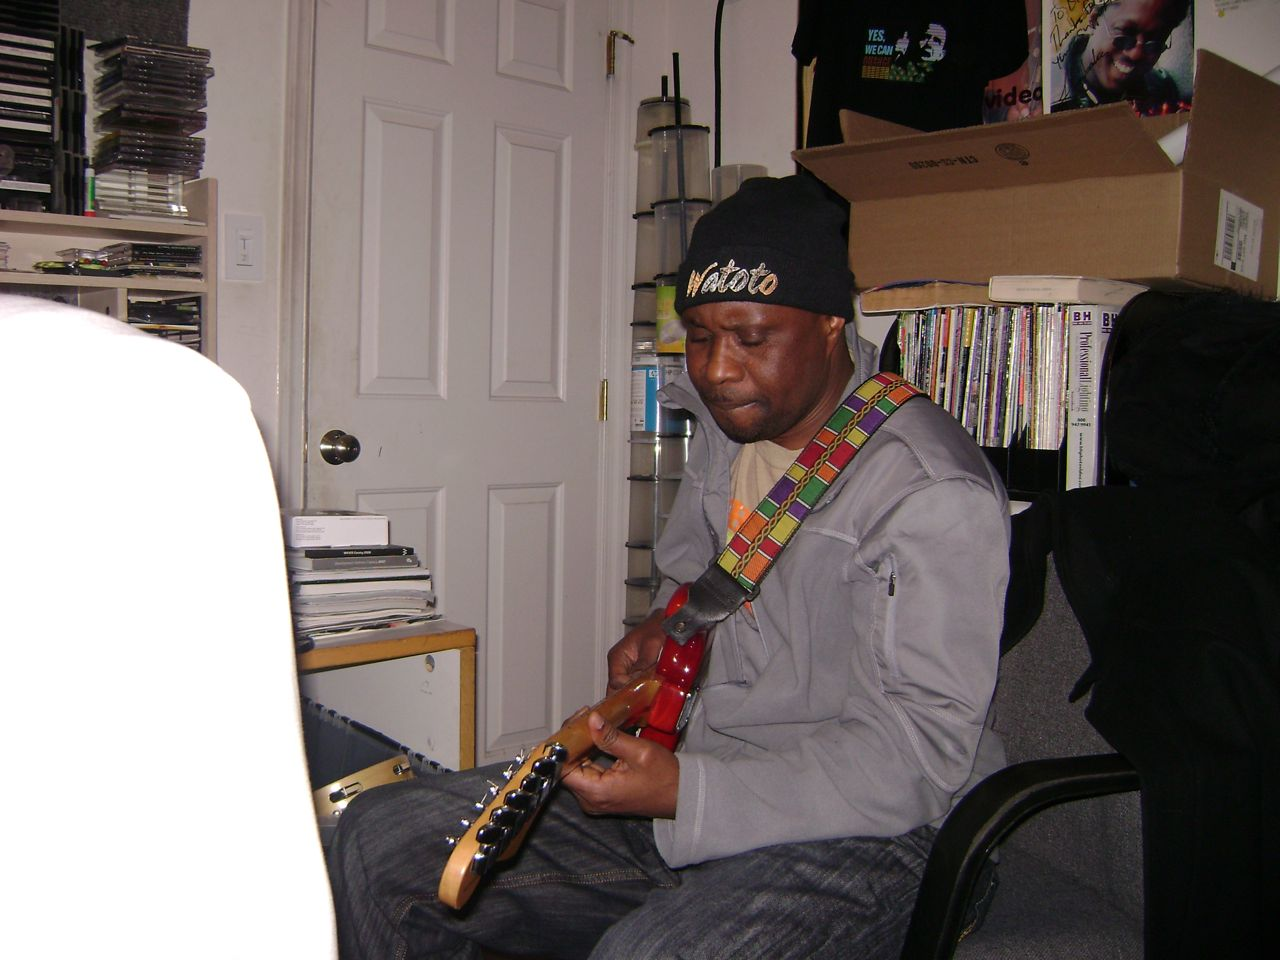 Olagbara Recording Session Bowie MD November 7th 2009 - 03 John Bashenghezi